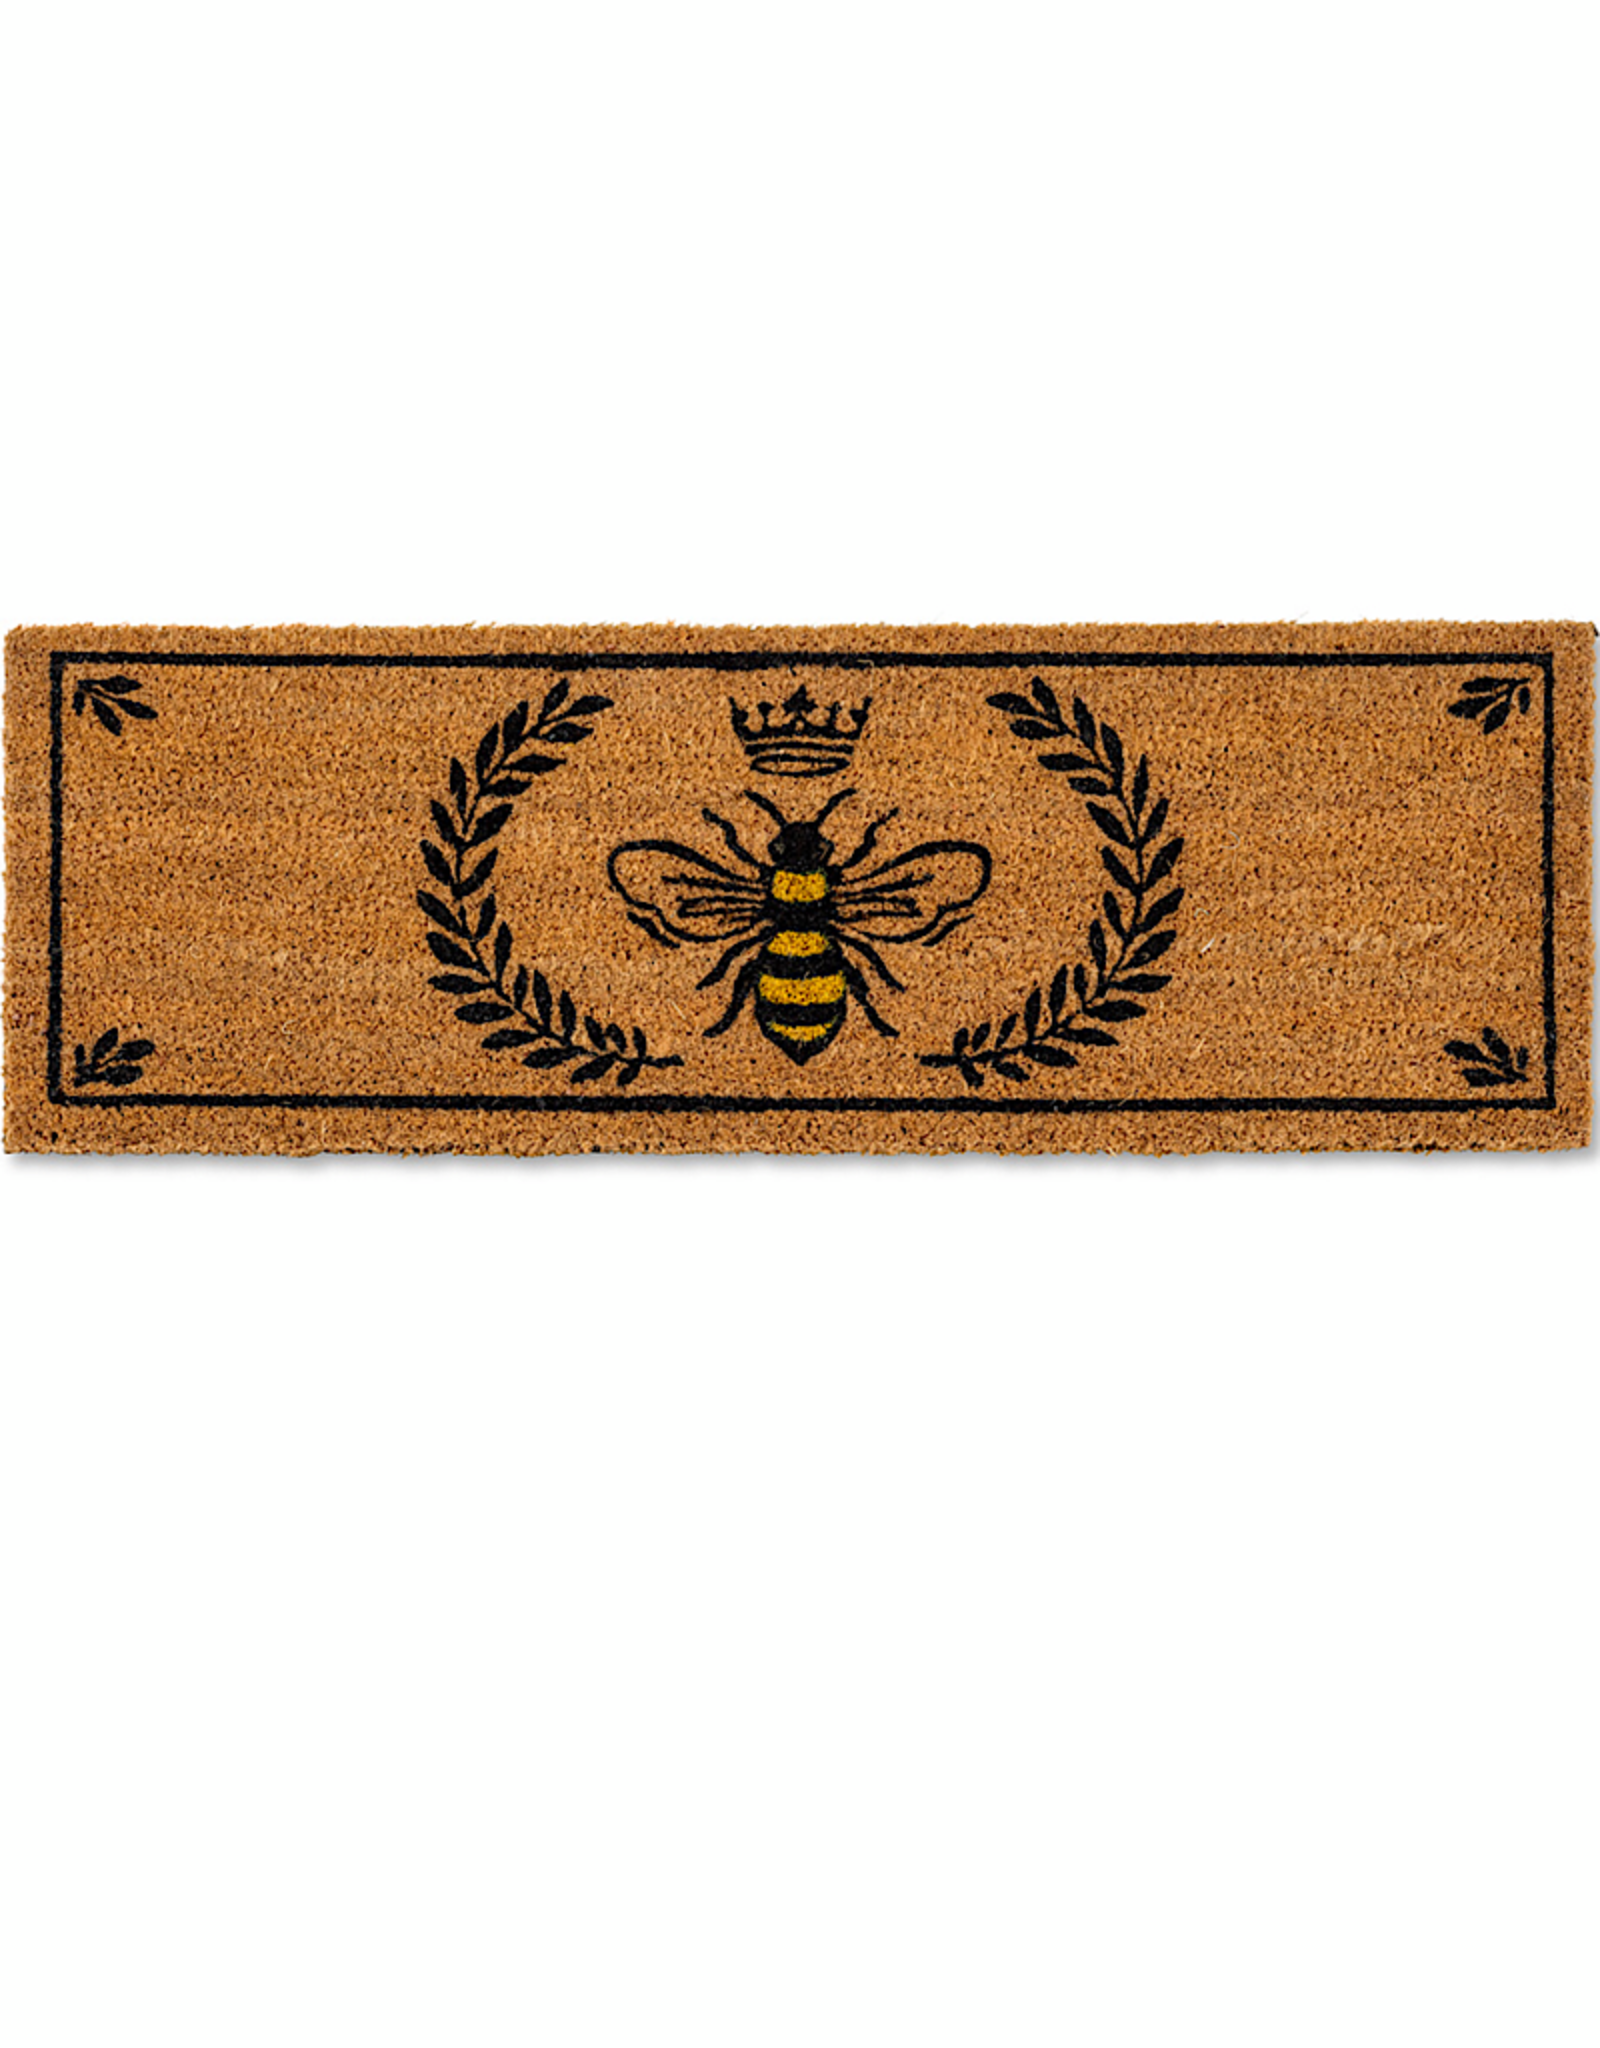 Balcony Doormat Bee in crest 10x30""